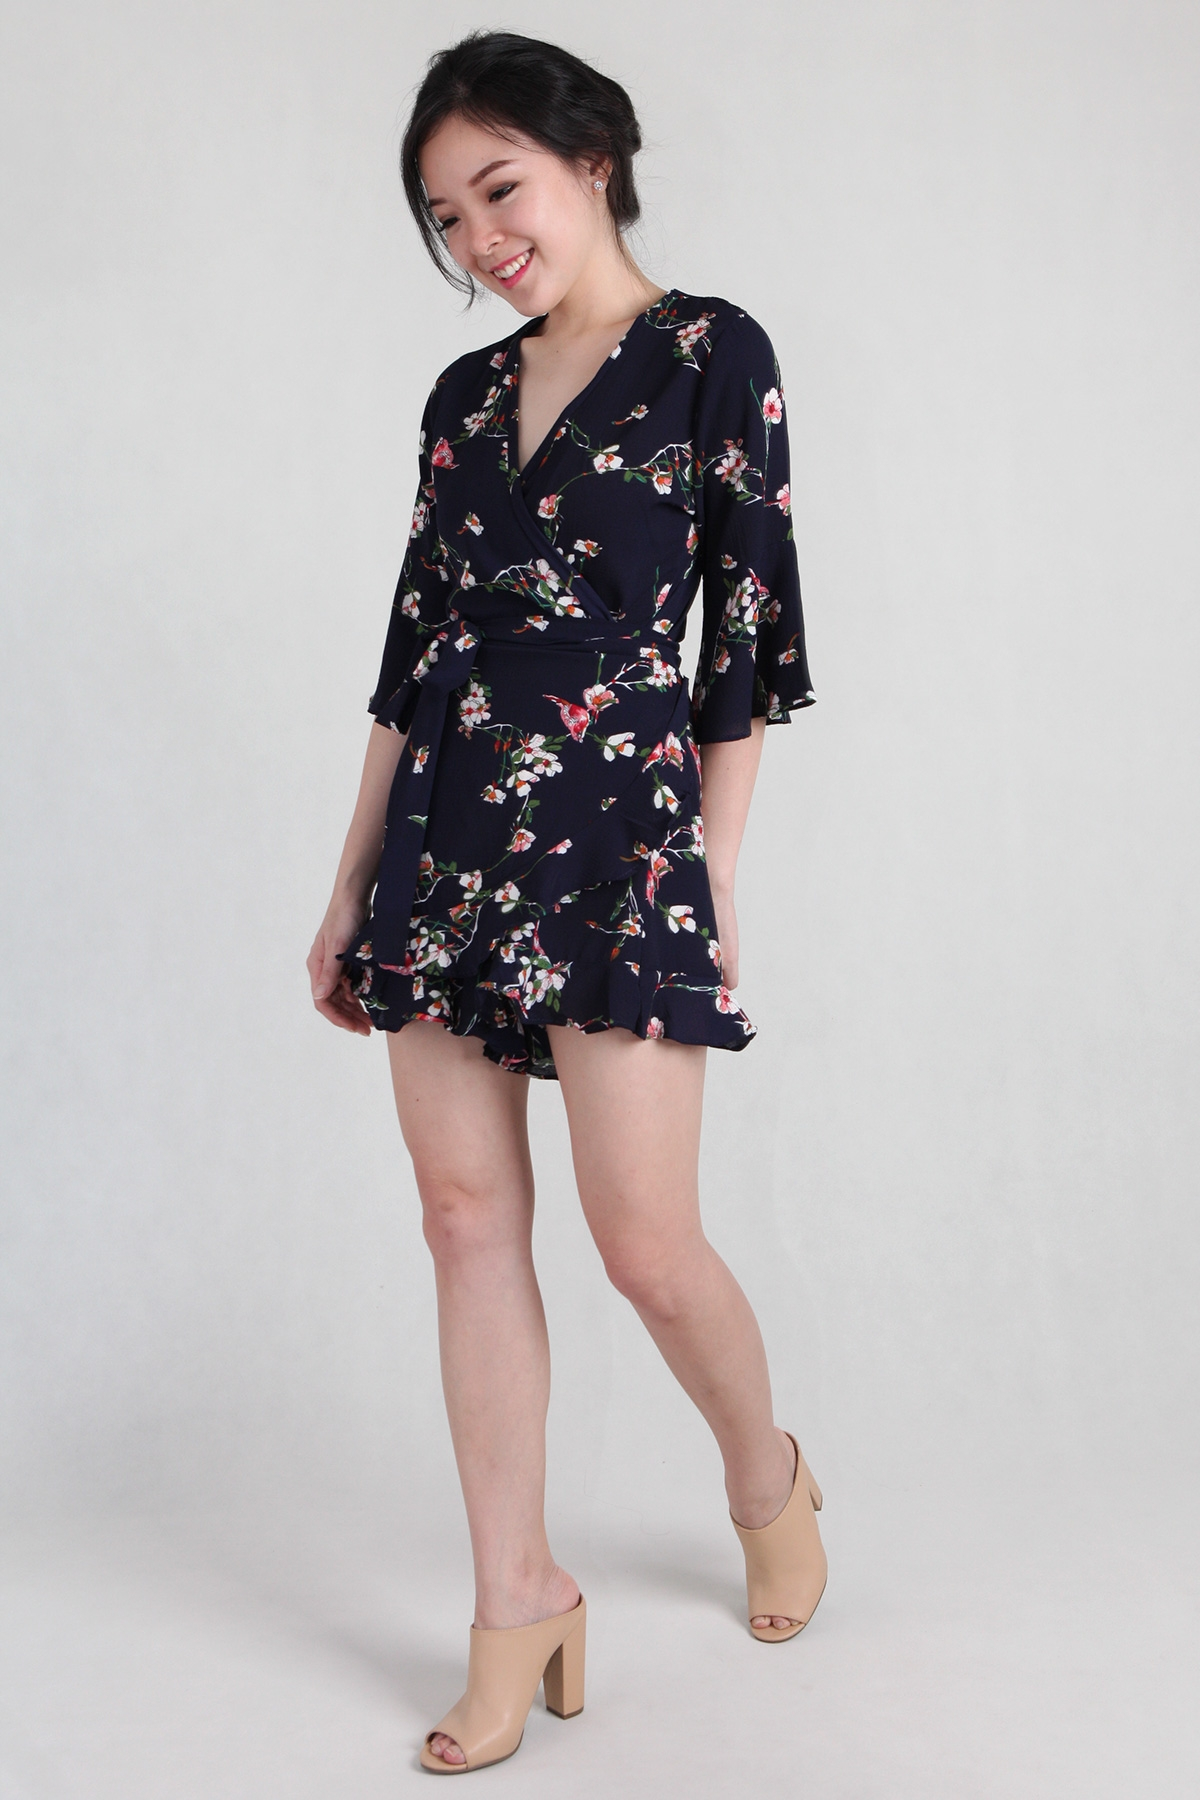 Floral Ruffles Playsuit in Navy